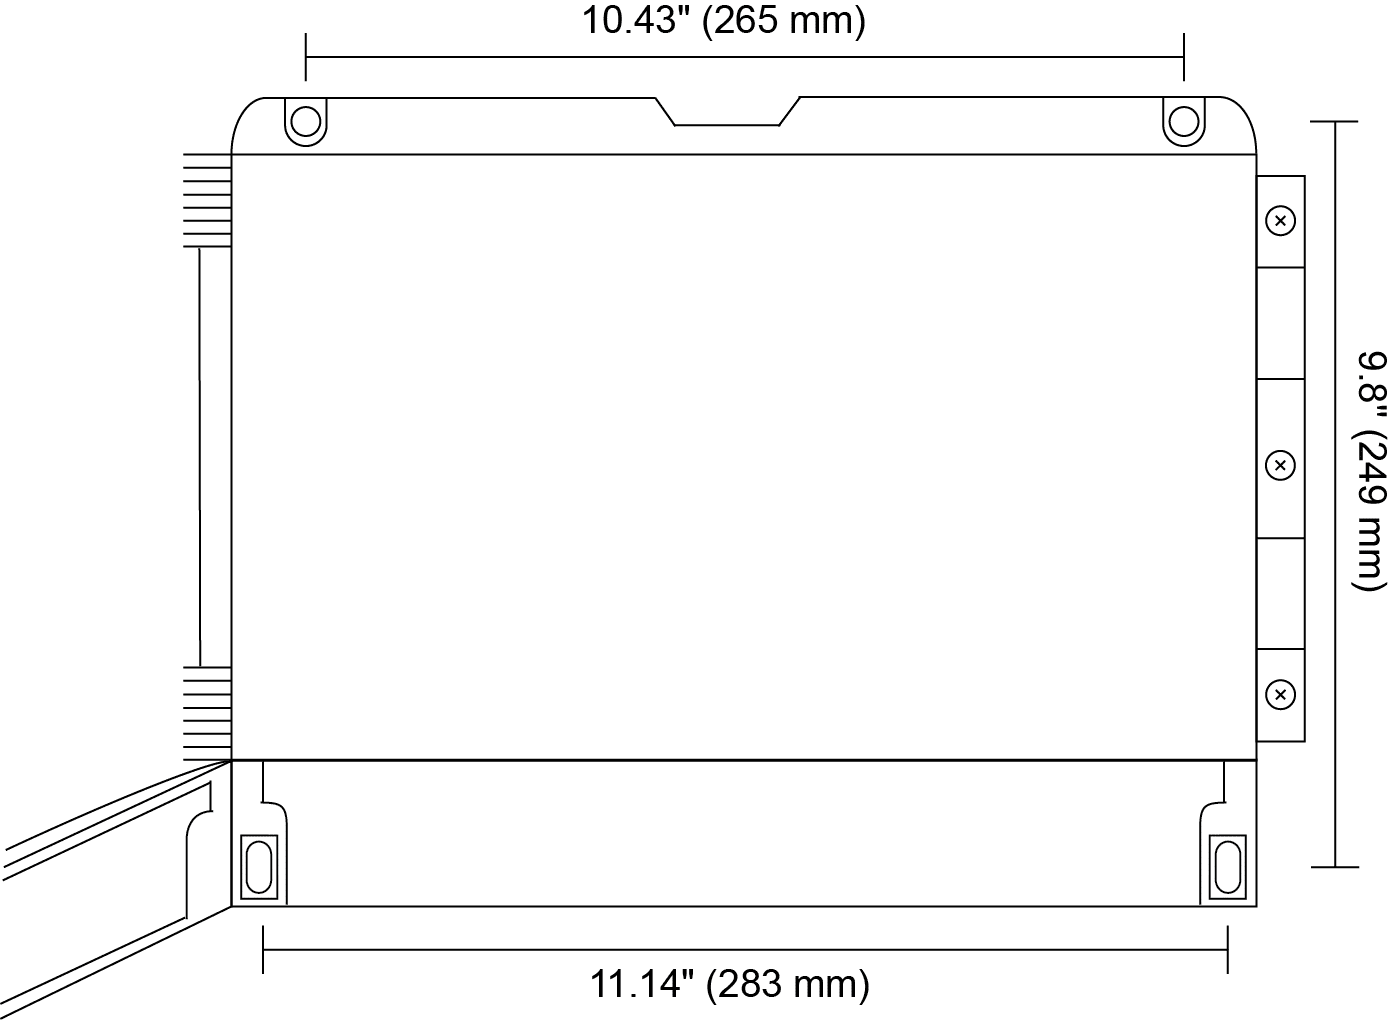 Helios Large Display Meter dimensions